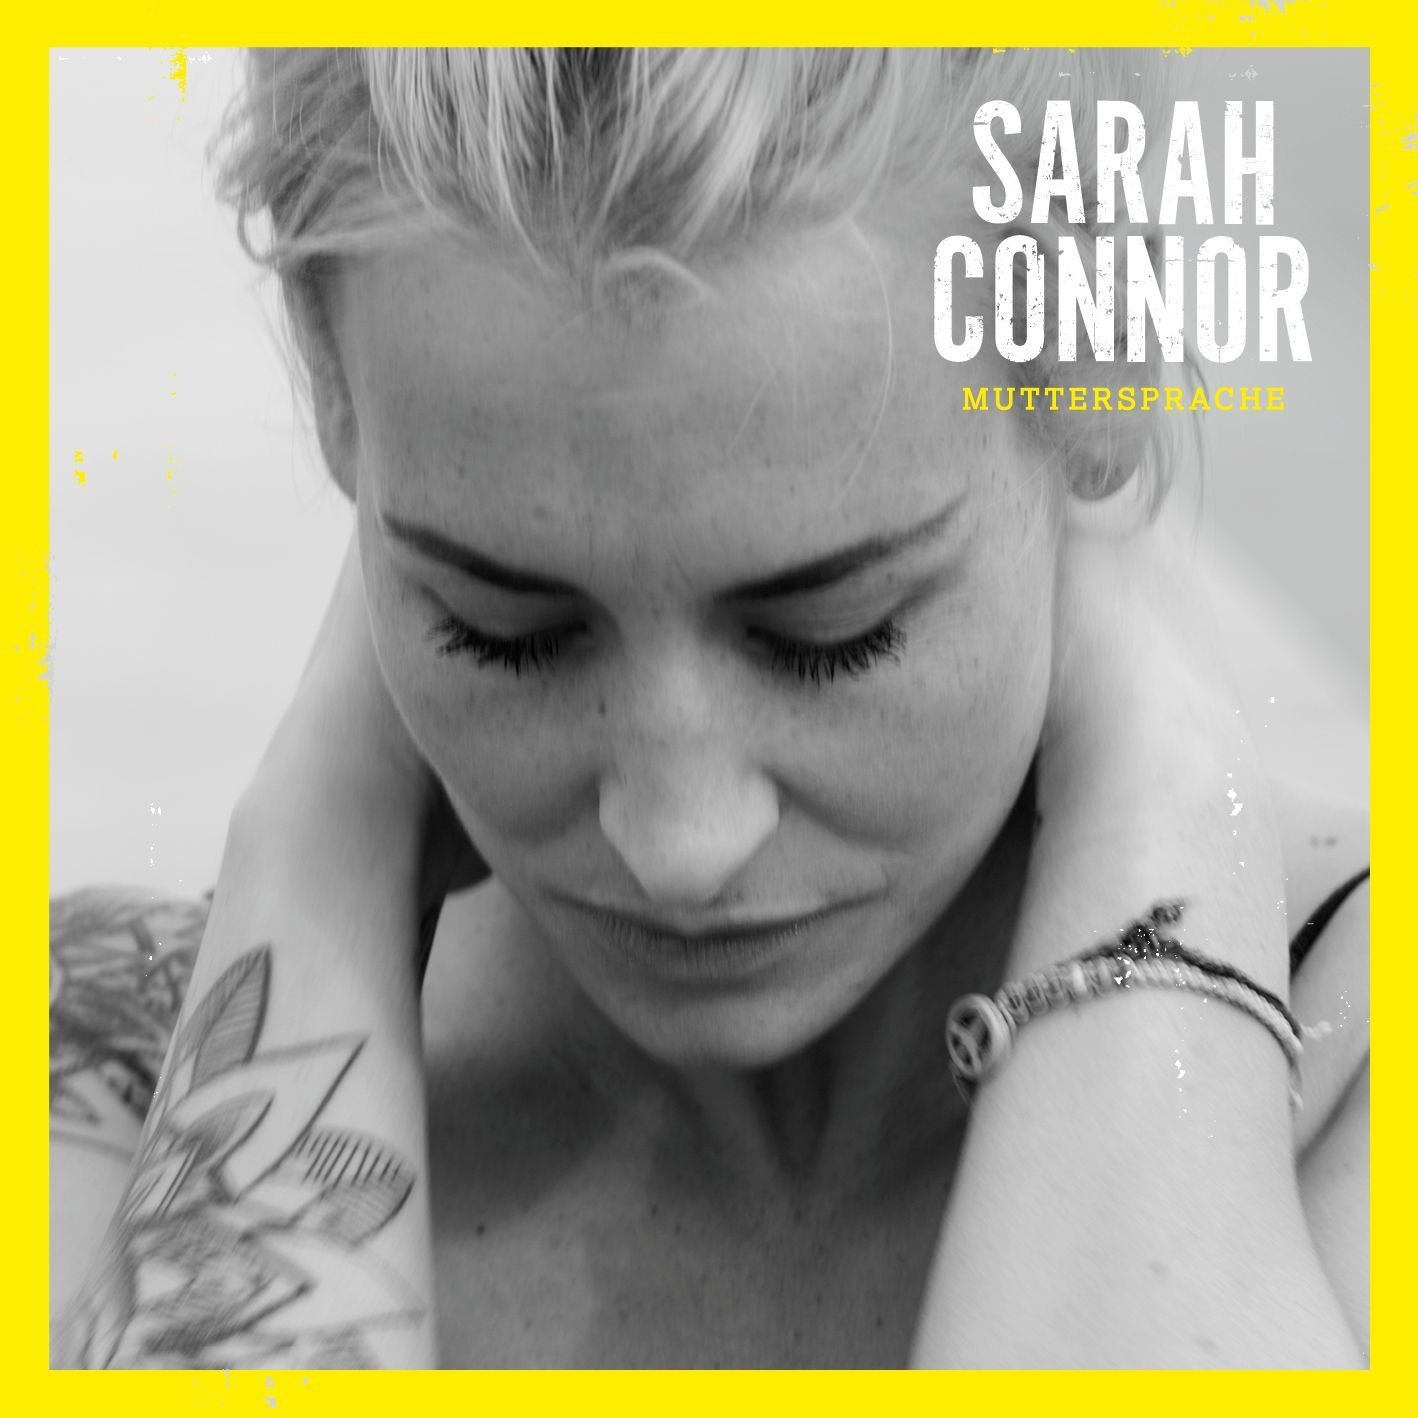 Sarah Connor Muttersprache CD CD